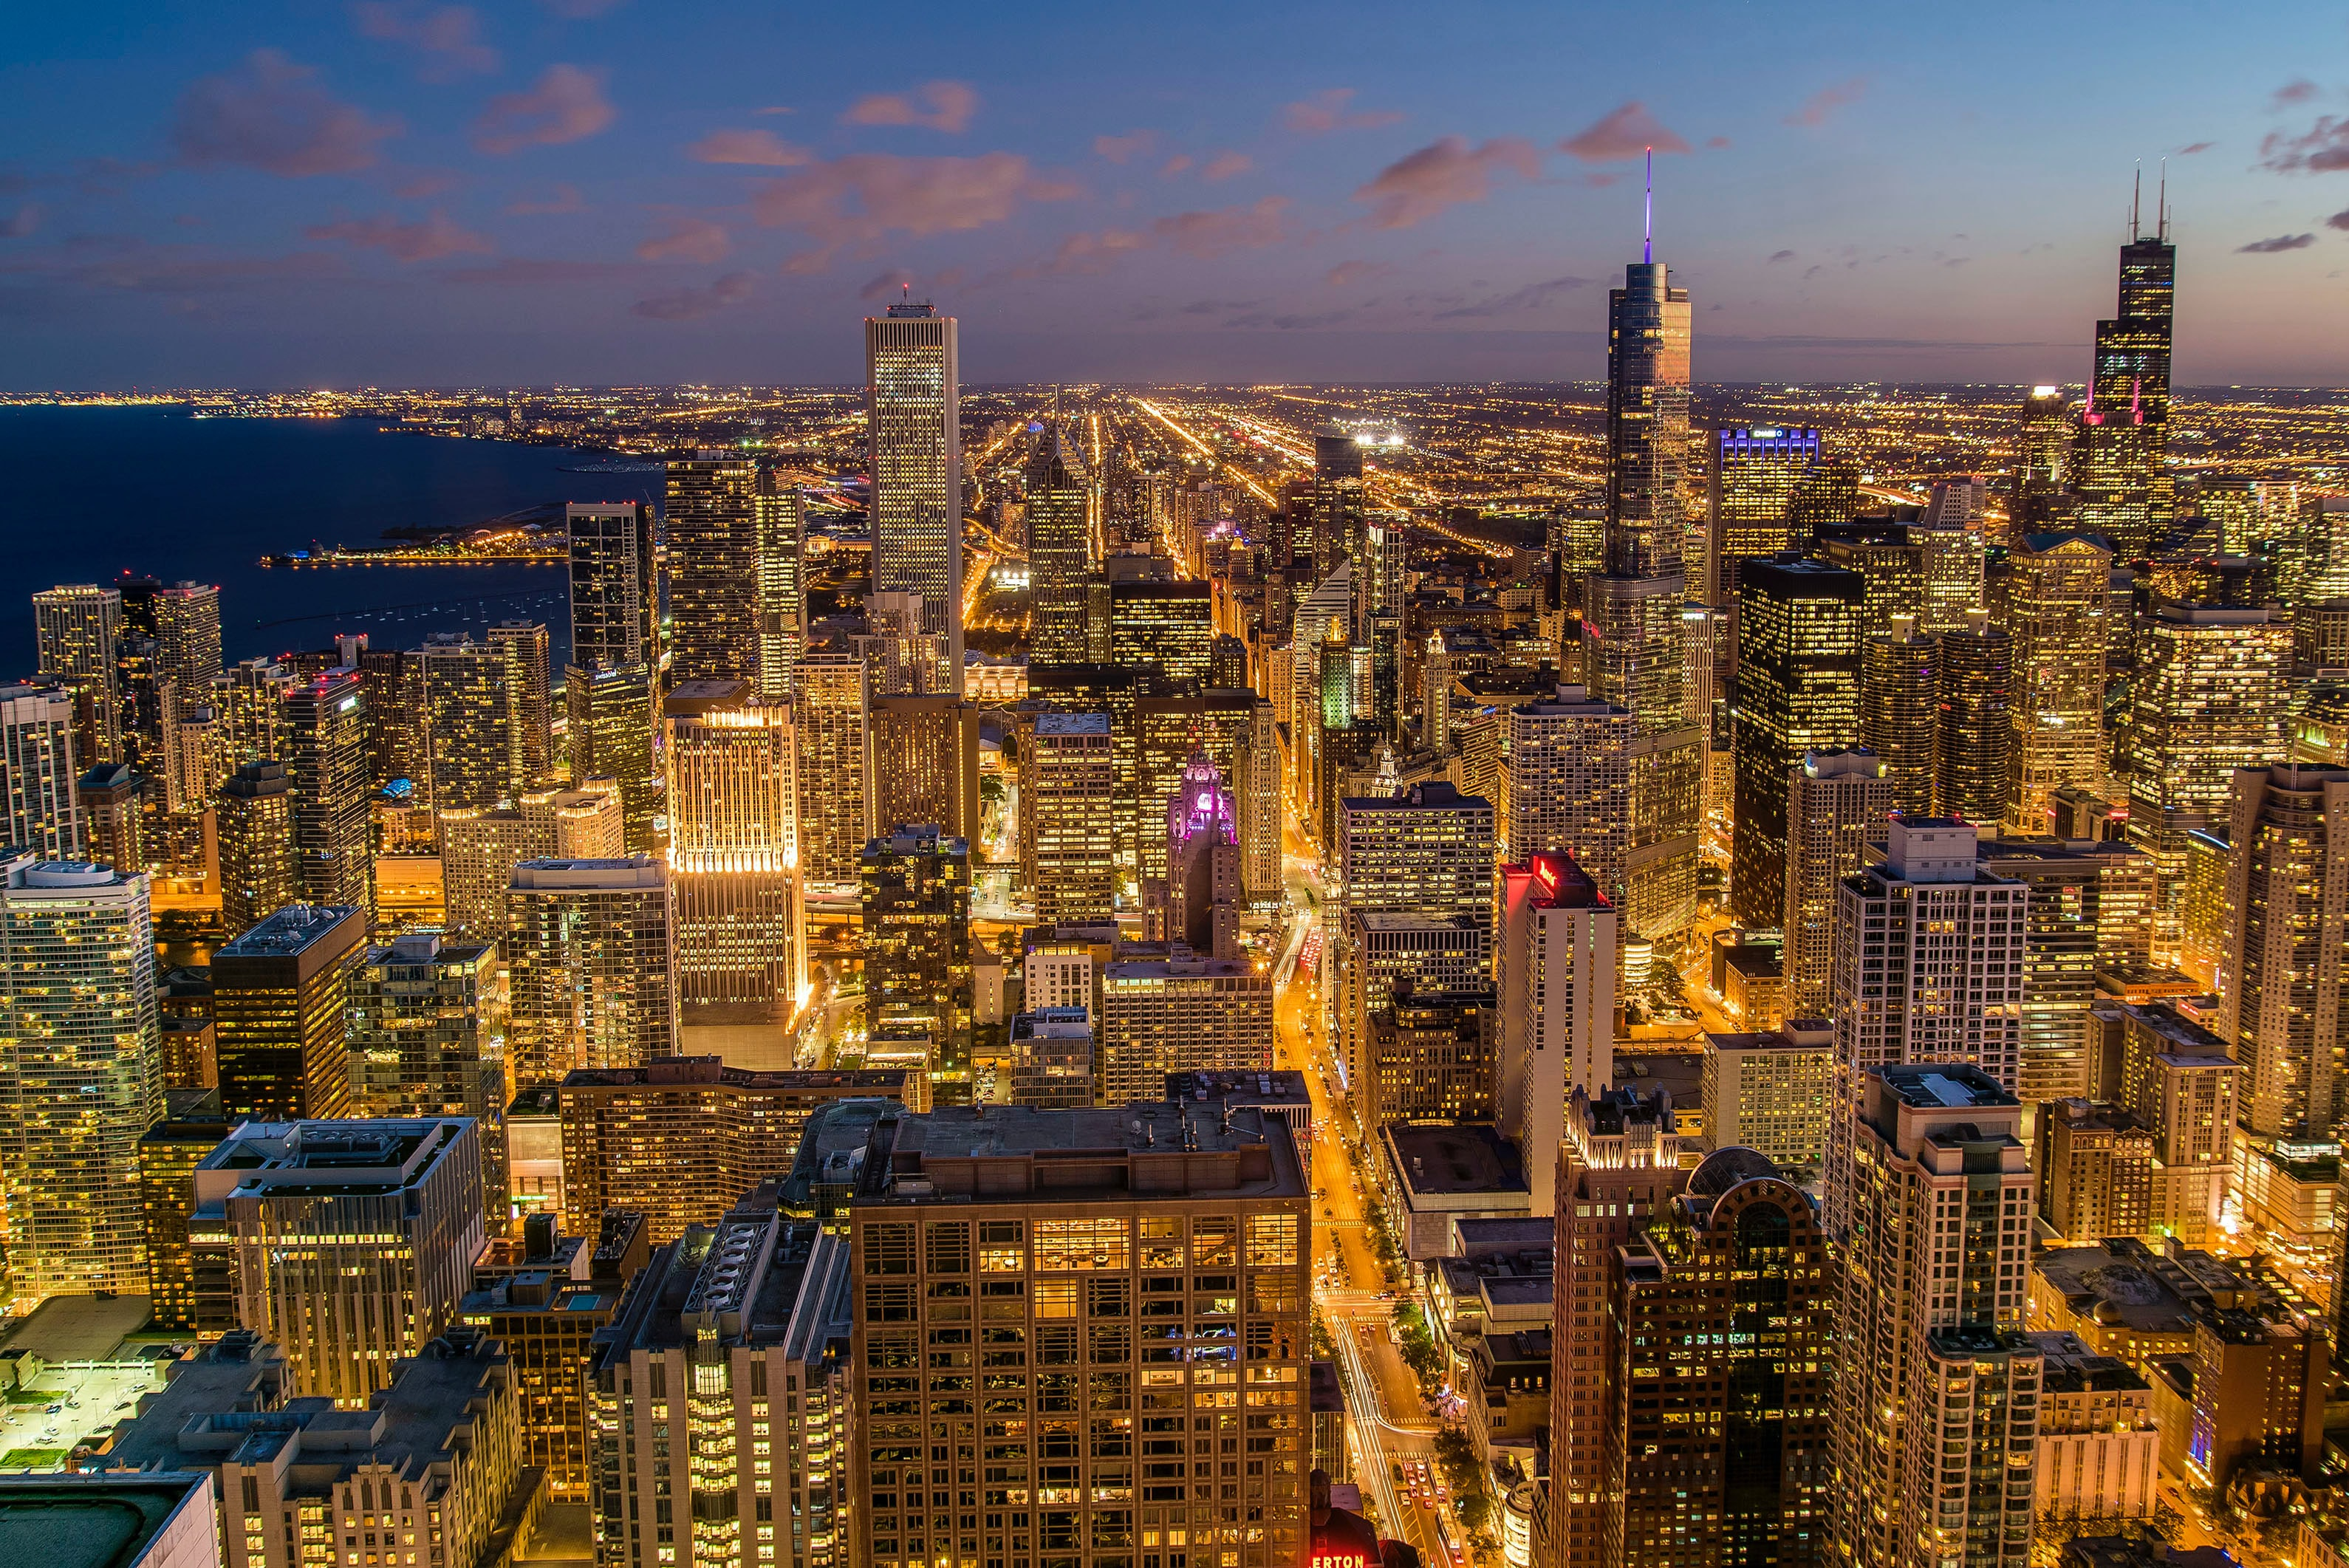 Chicago Night Skyline Pictures Download Free Images On Unsplash